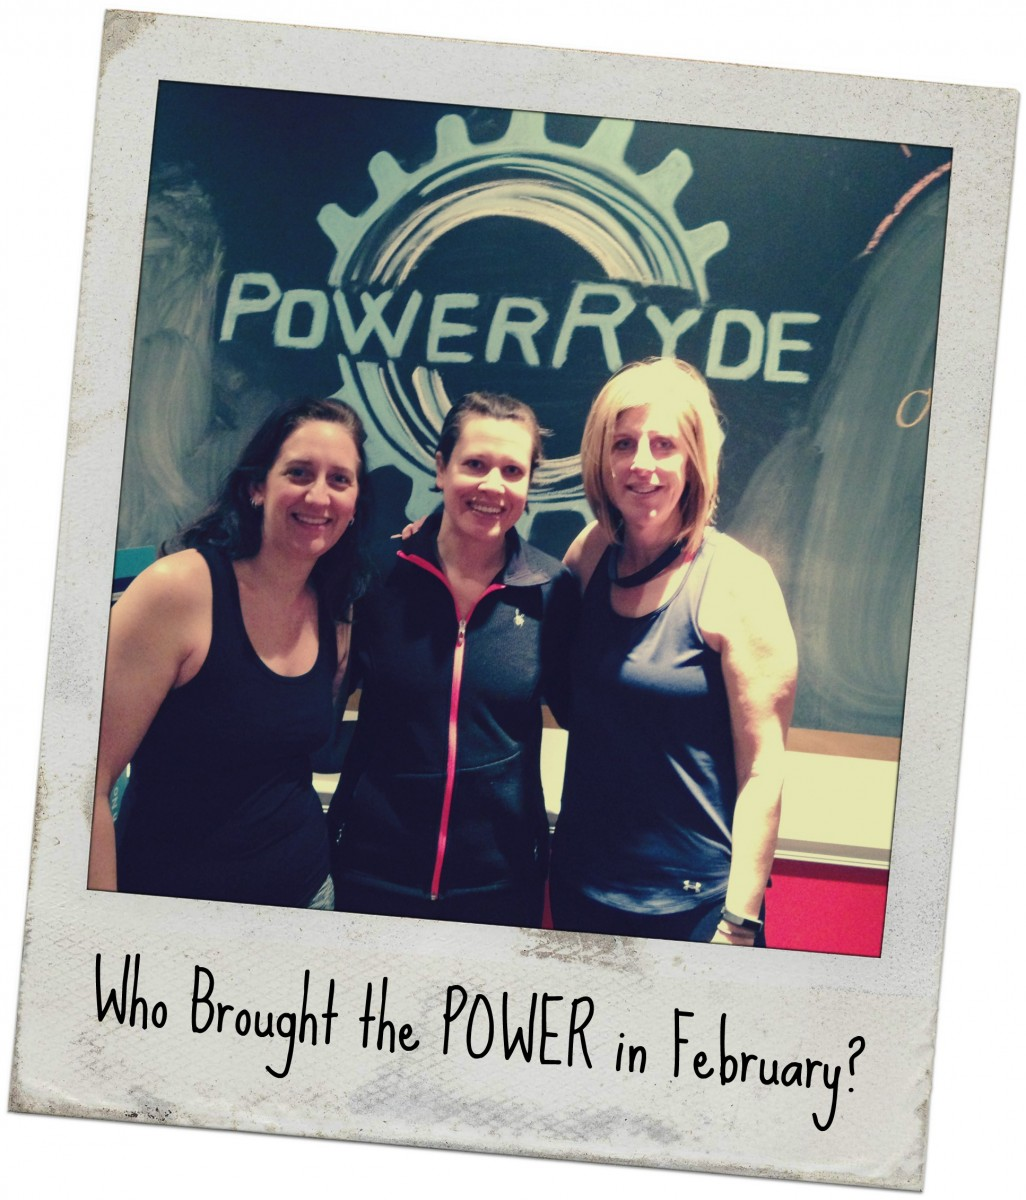 Who Brought the POWER in February?